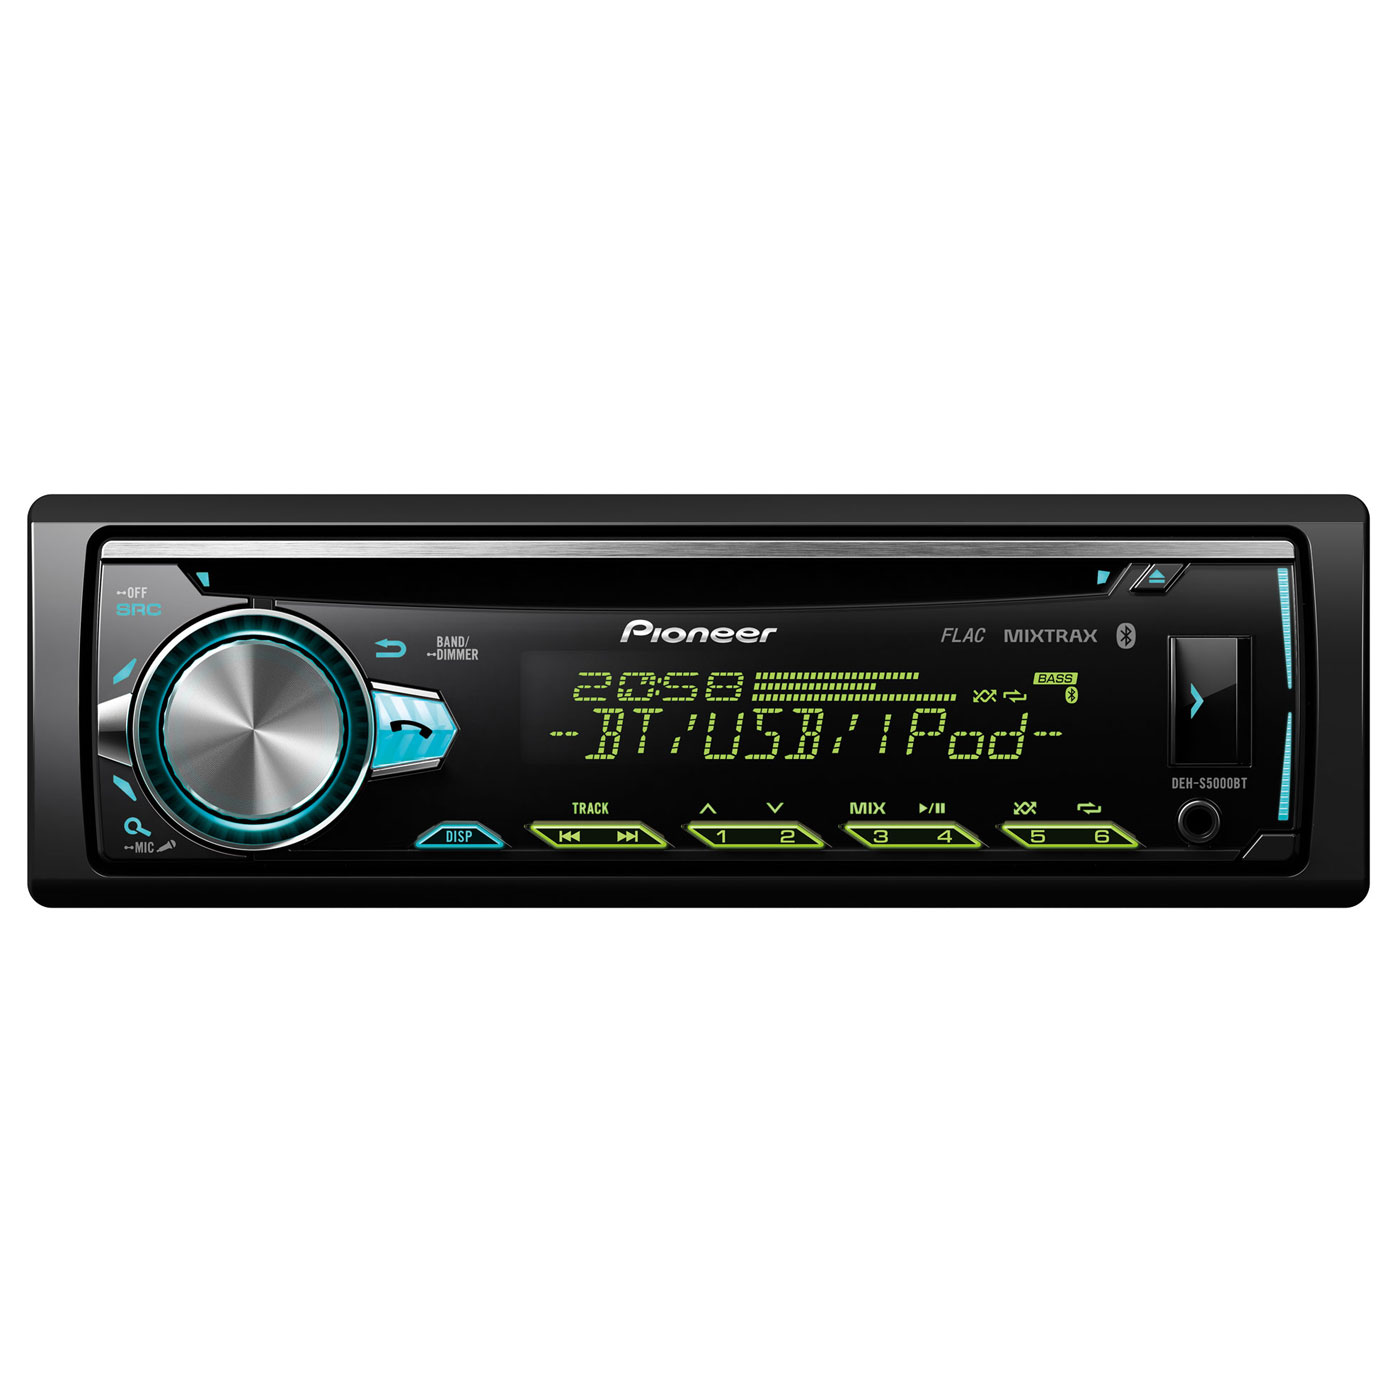 pioneer deh s5000bt autoradio pioneer sur. Black Bedroom Furniture Sets. Home Design Ideas